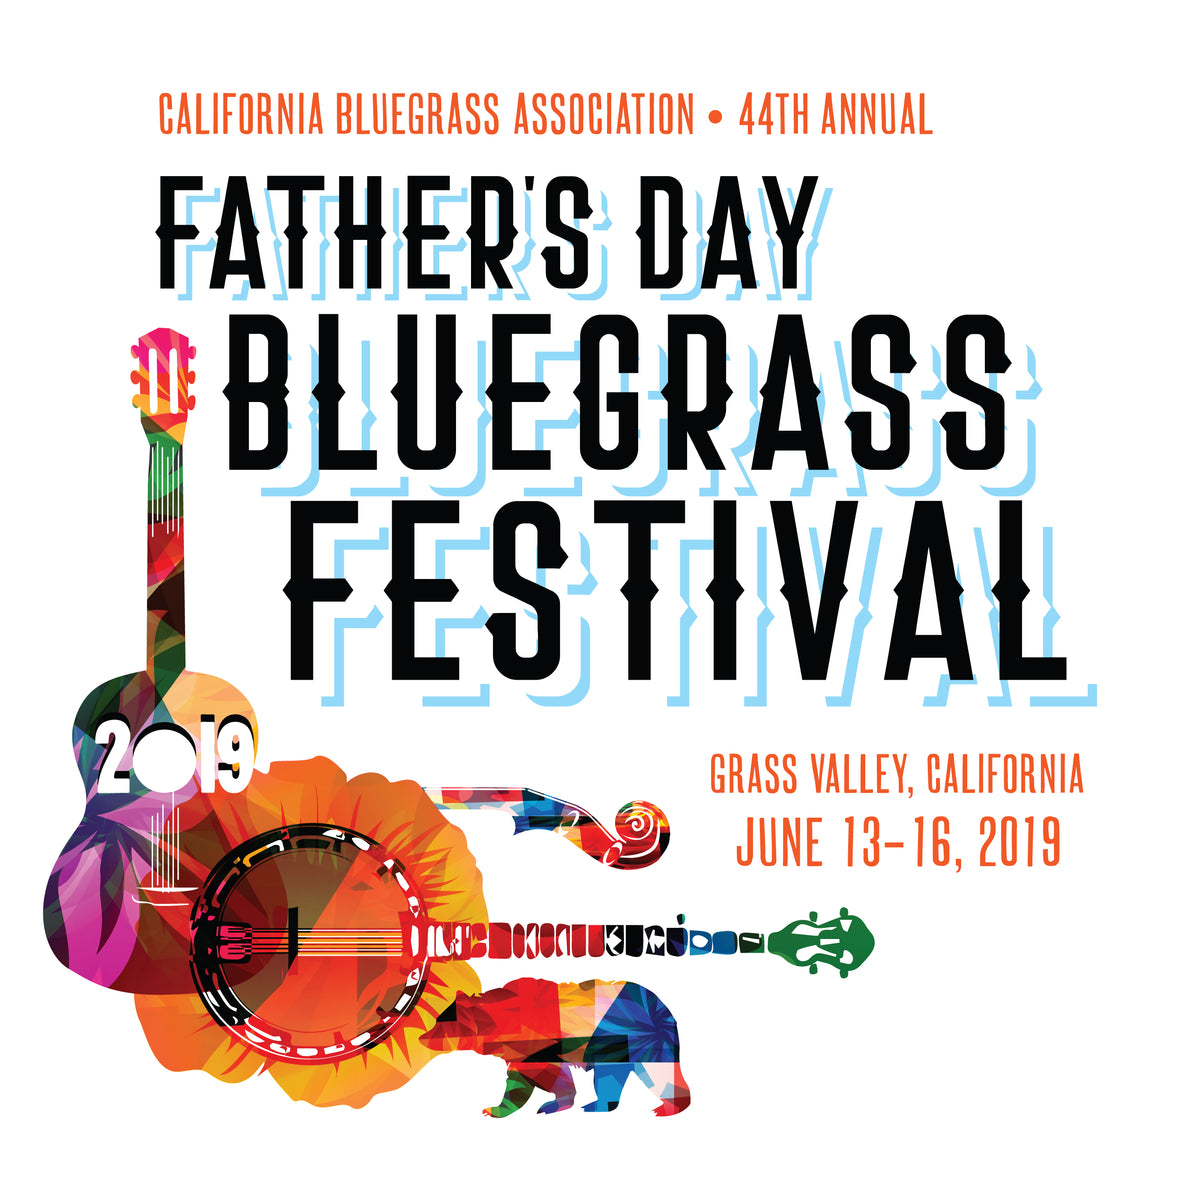 Father's Day Bluegrass Festival